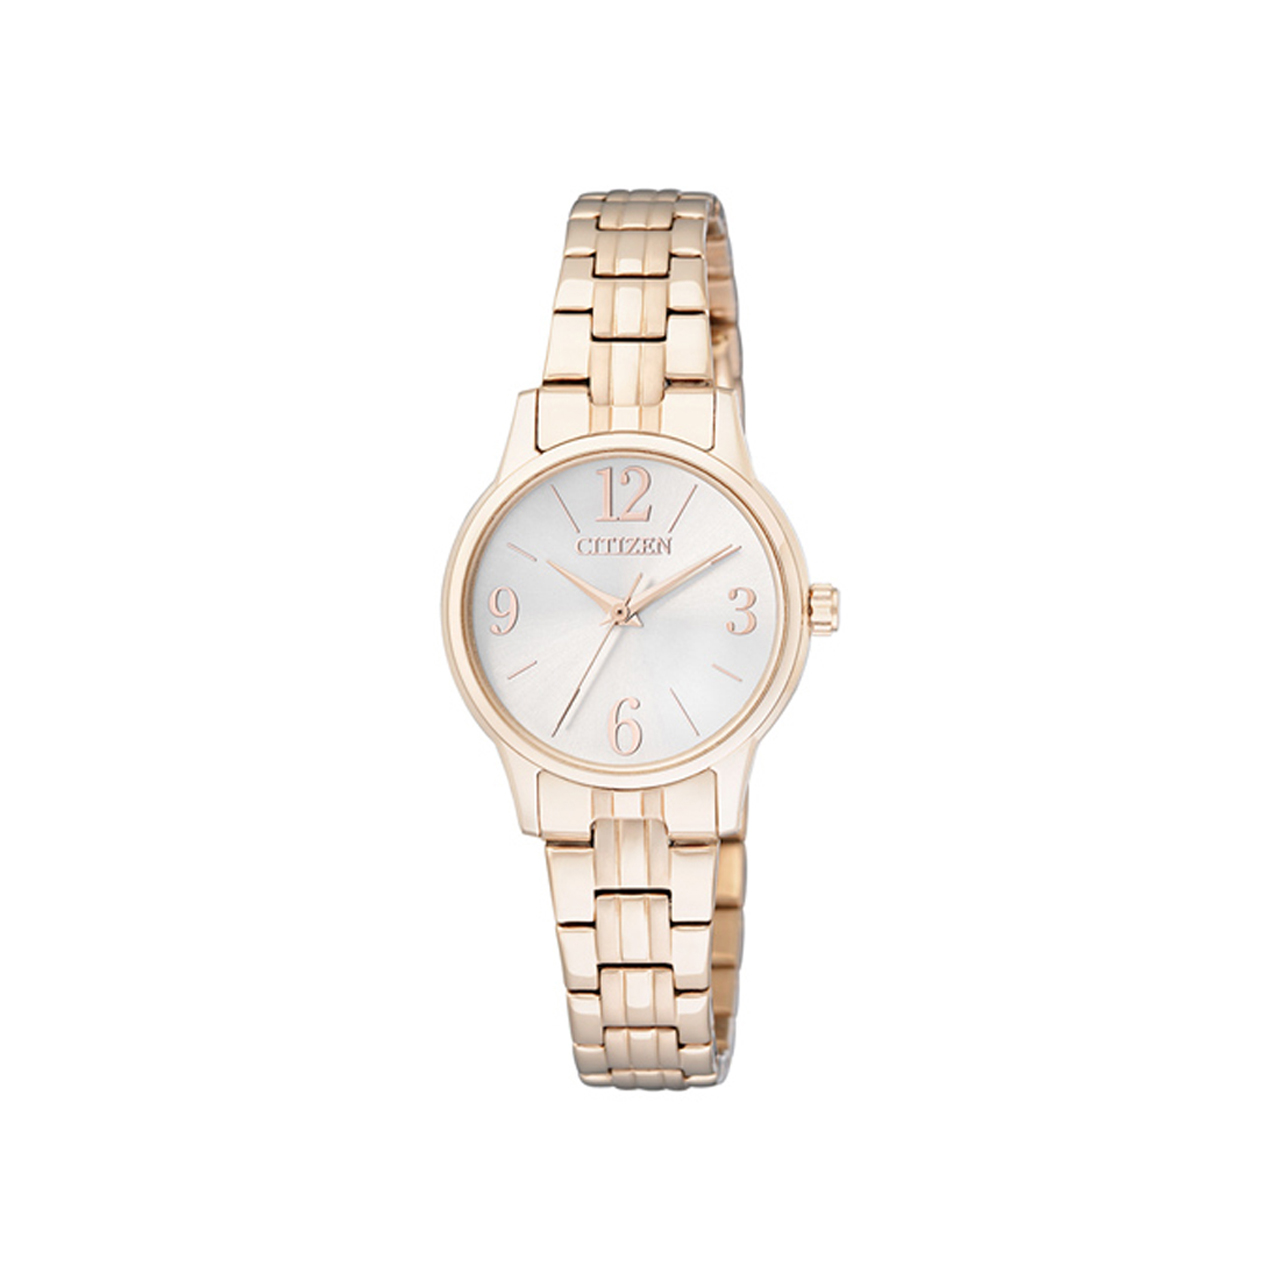 Citizen Basic Damen Armbanduhr EX0293-51A